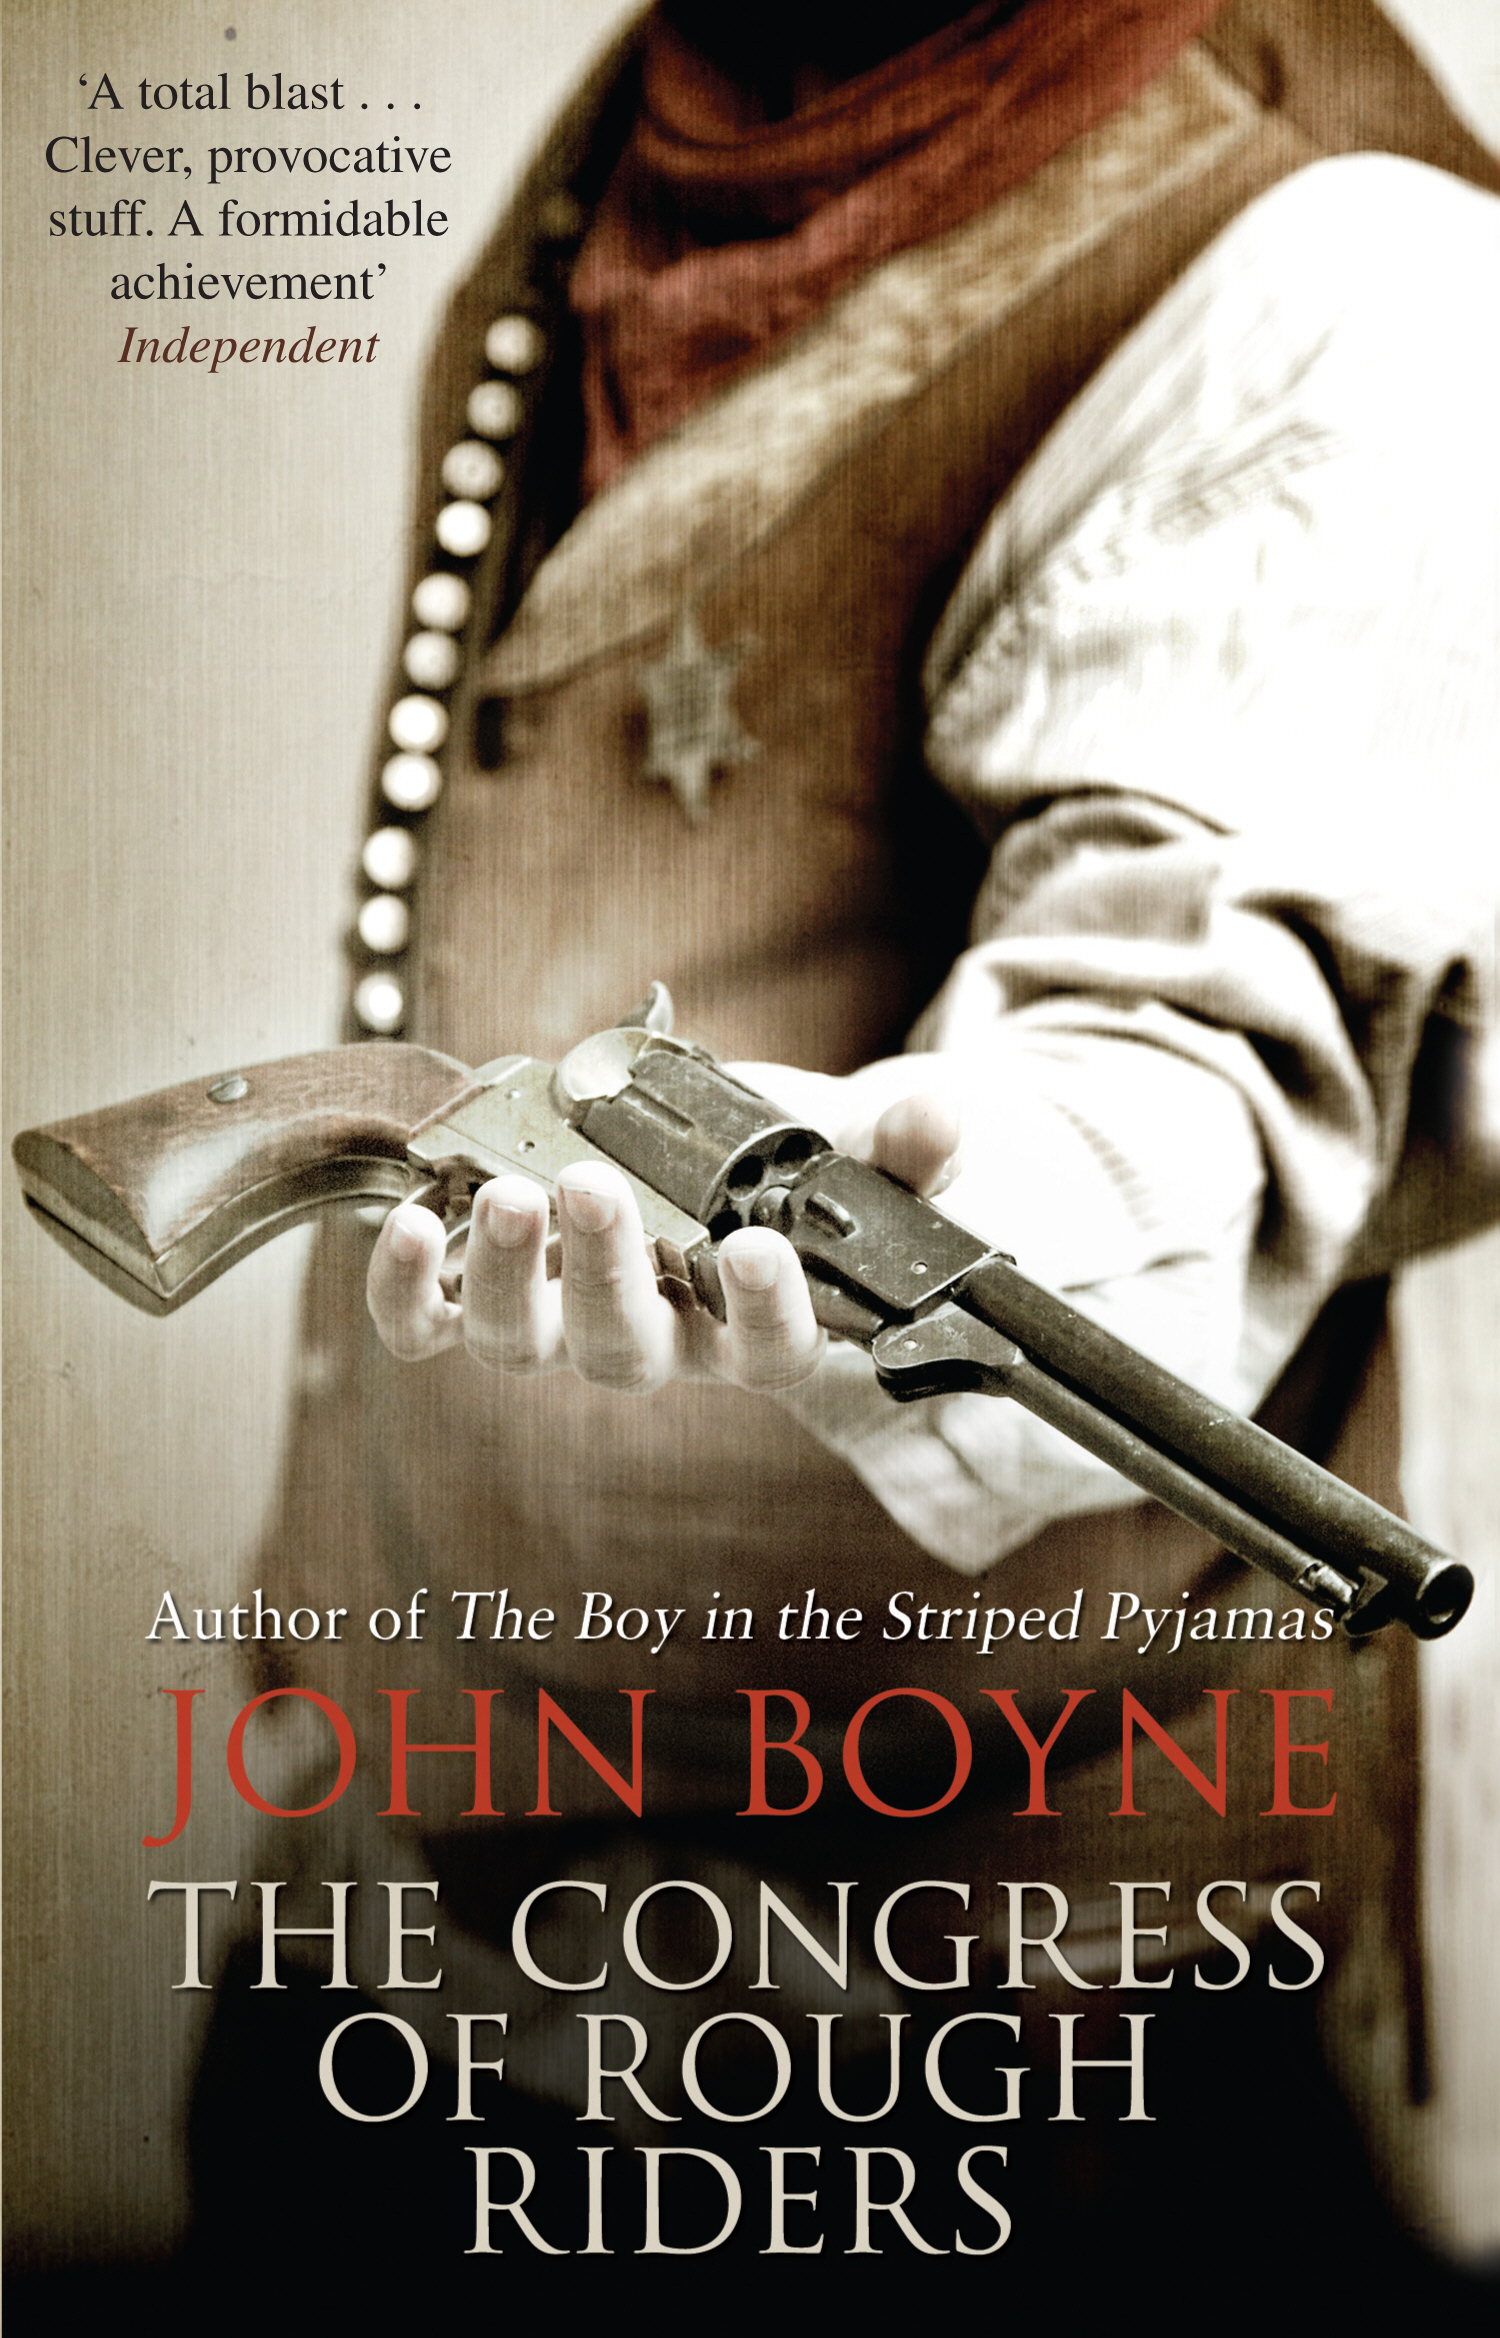 biography john boyne the congress of rough riders